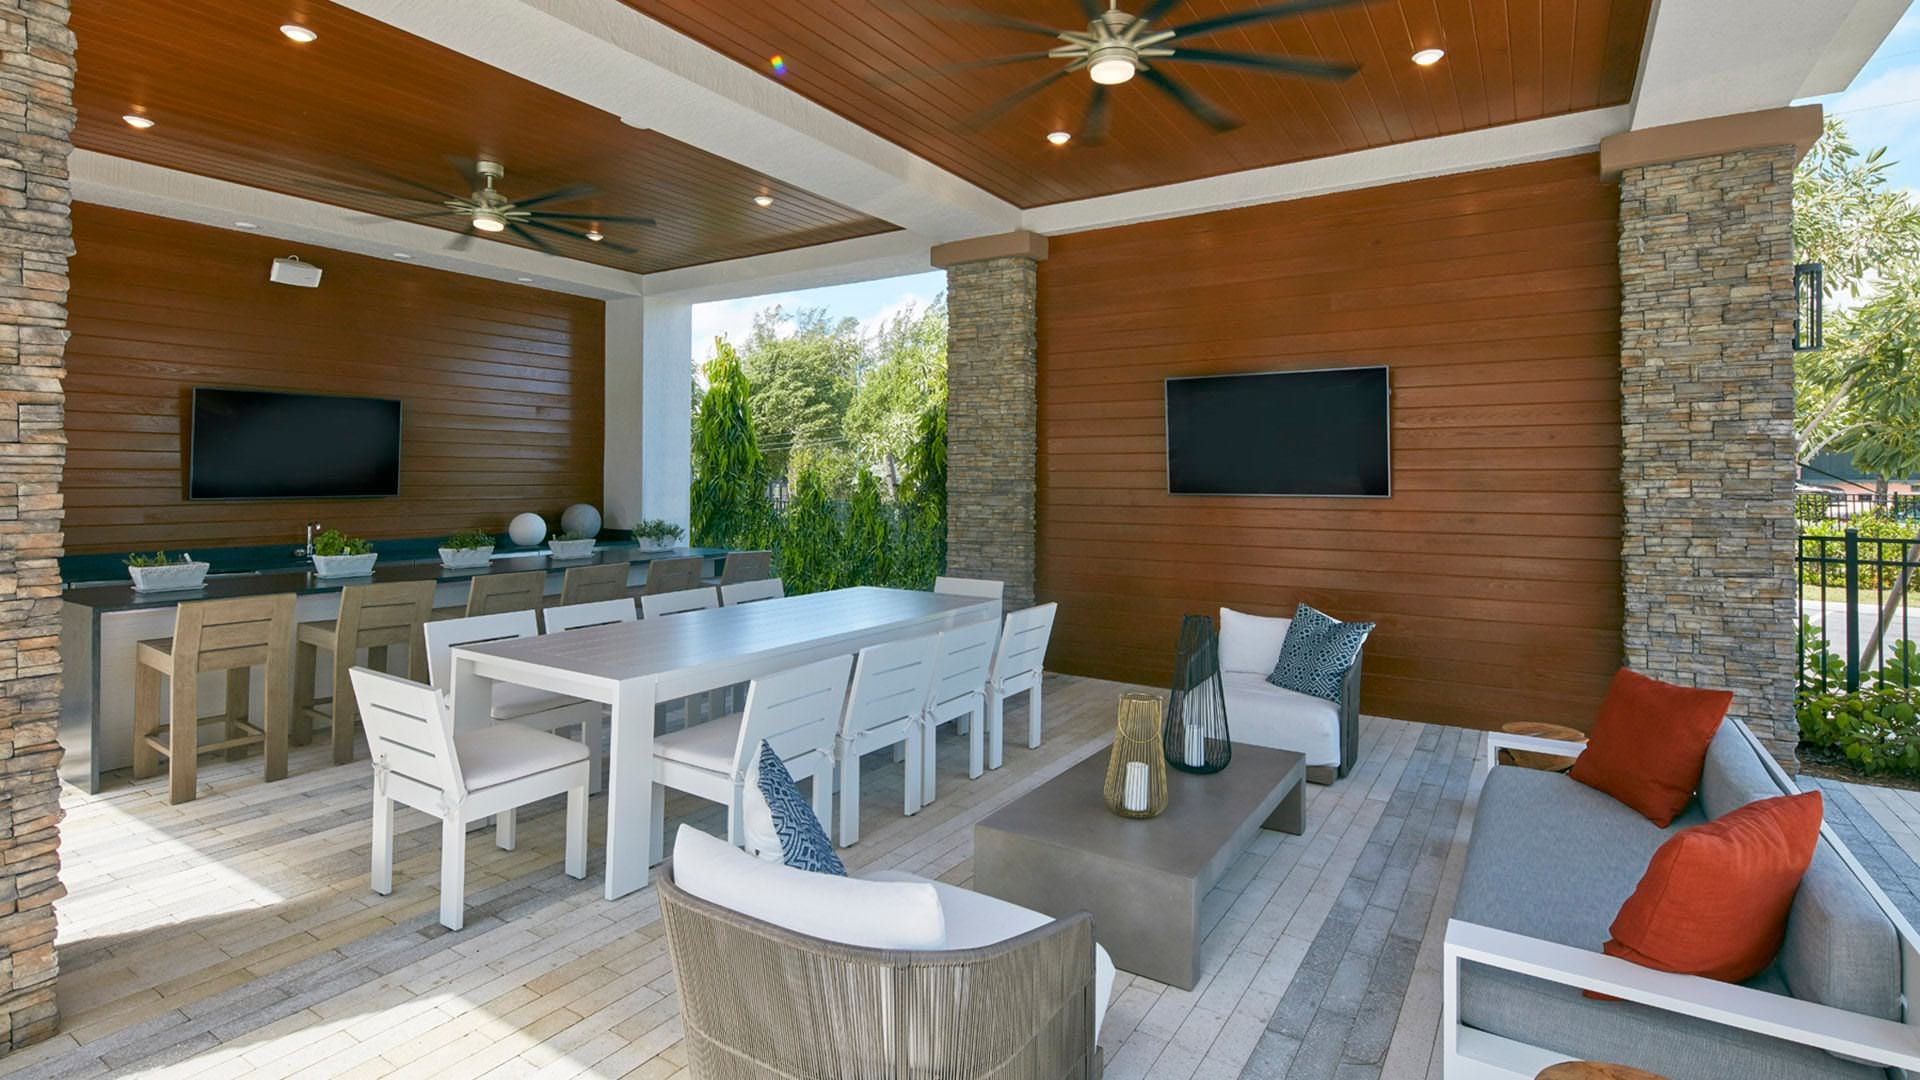 outdoor lounge with kitchen, dining areas and tvs